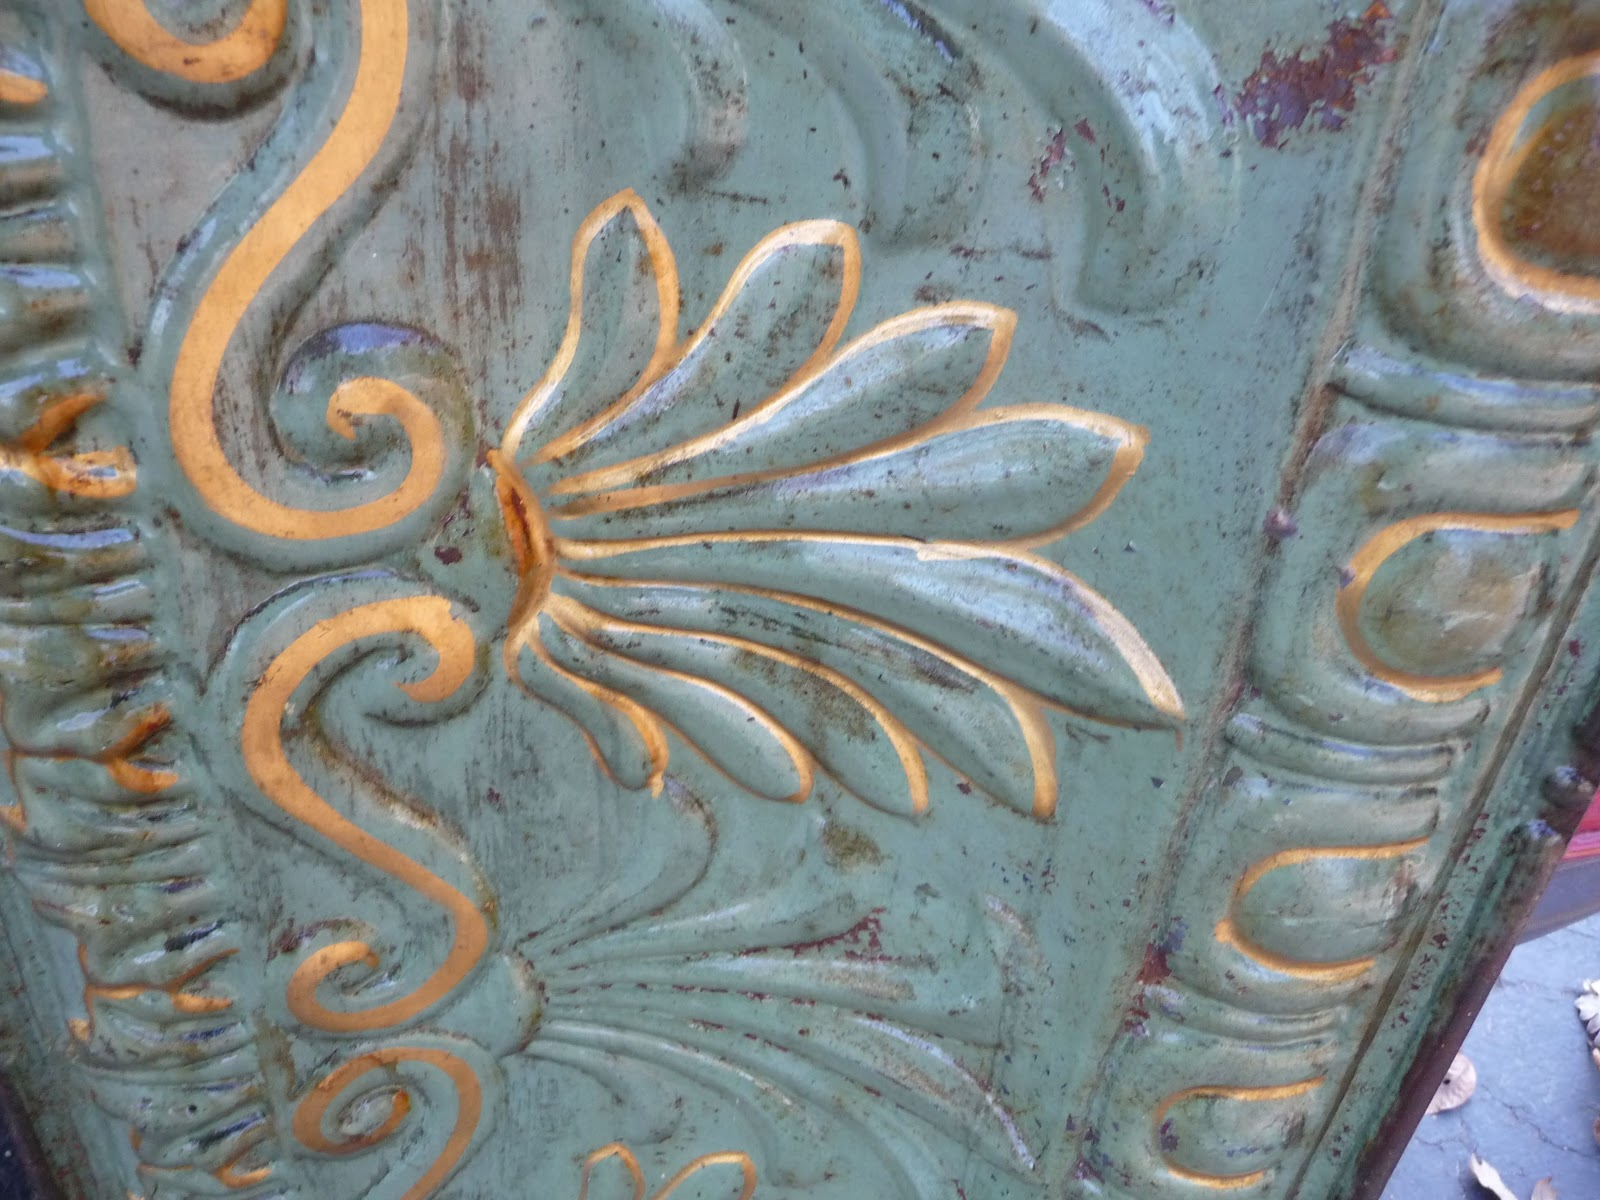 Lady antique dealer antique tin ceiling tile patina a little soap and water and these pieces will be perfect great old paint cant fake that dailygadgetfo Image collections